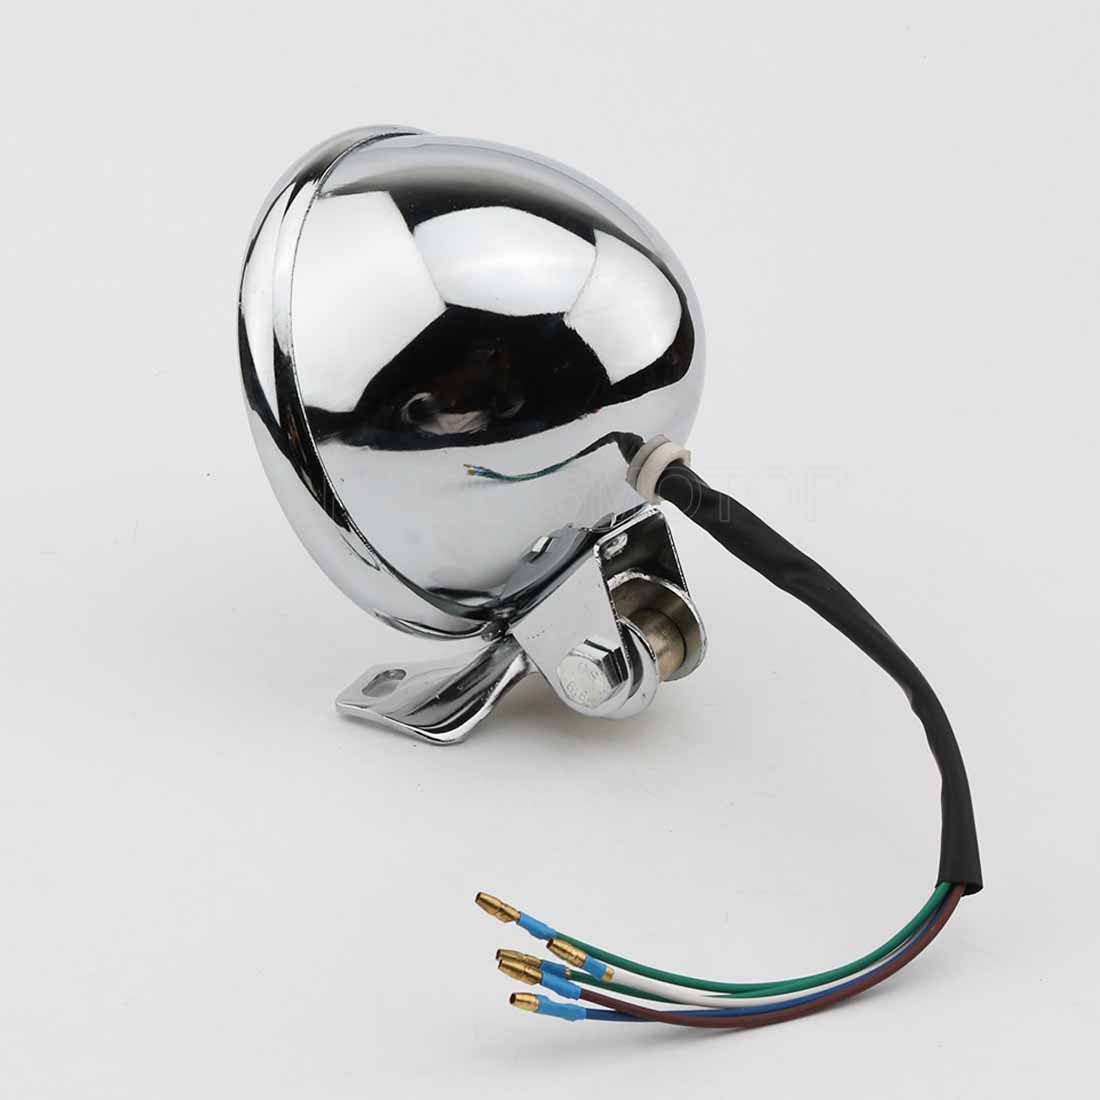 5 Chrome Motorcycle Headlight For Honda Shadow Spirit Deluxe Electrical Wiring Diagram Of 1992 Suzuki Vs800 Intruder Us And Canada Part 2 Aftermarket Parts